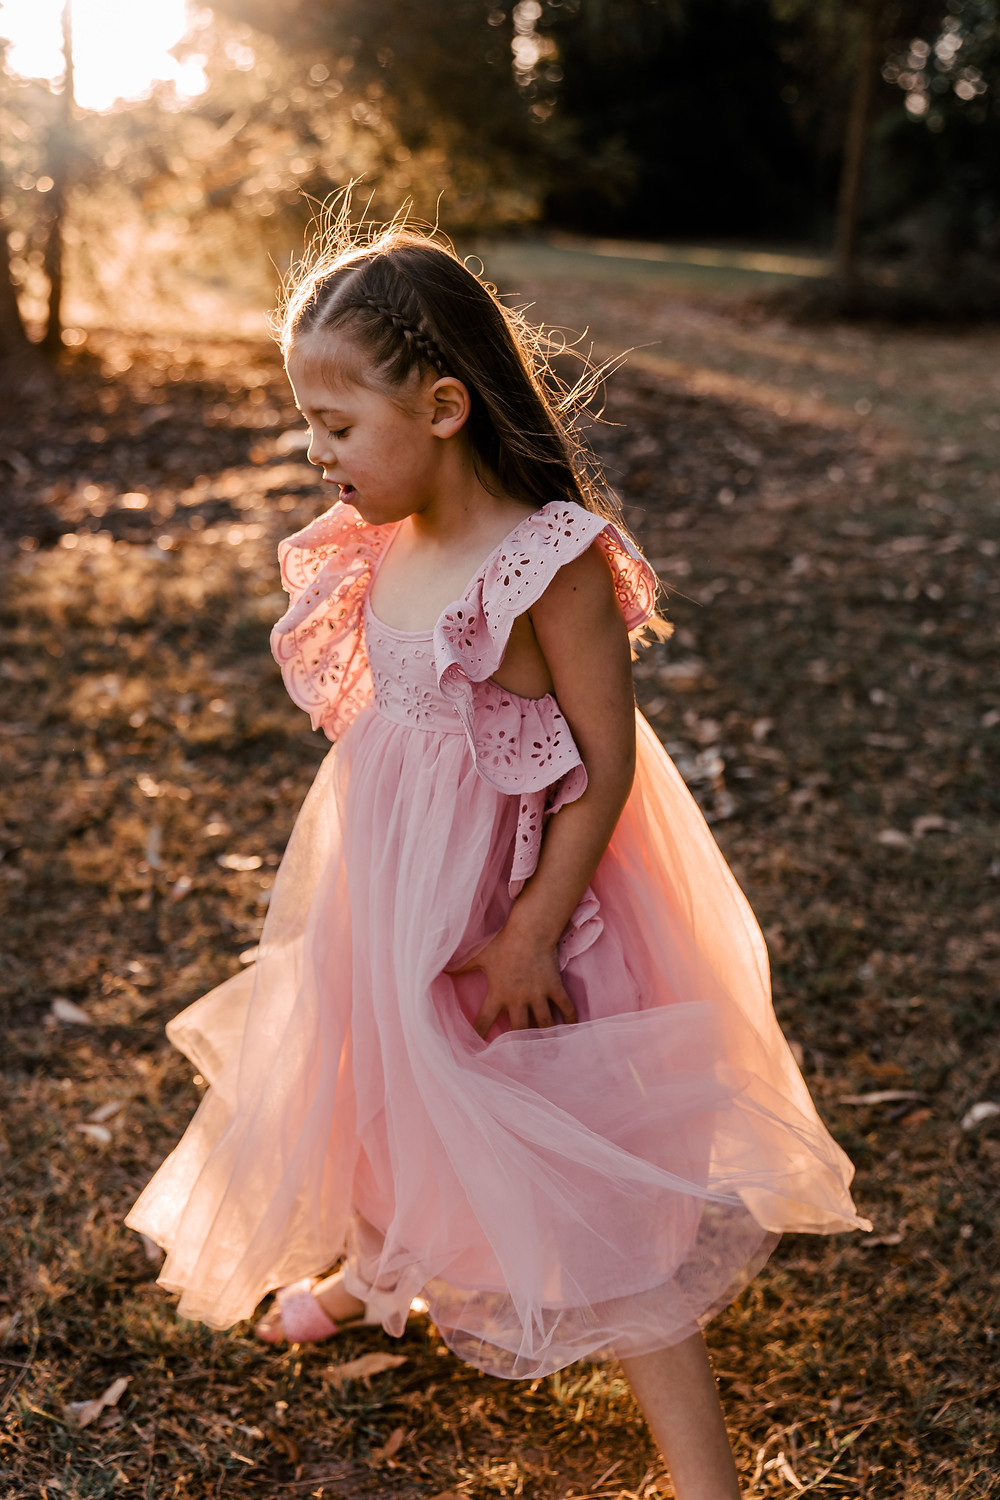 Girl in Pink Dress twirling in sunset